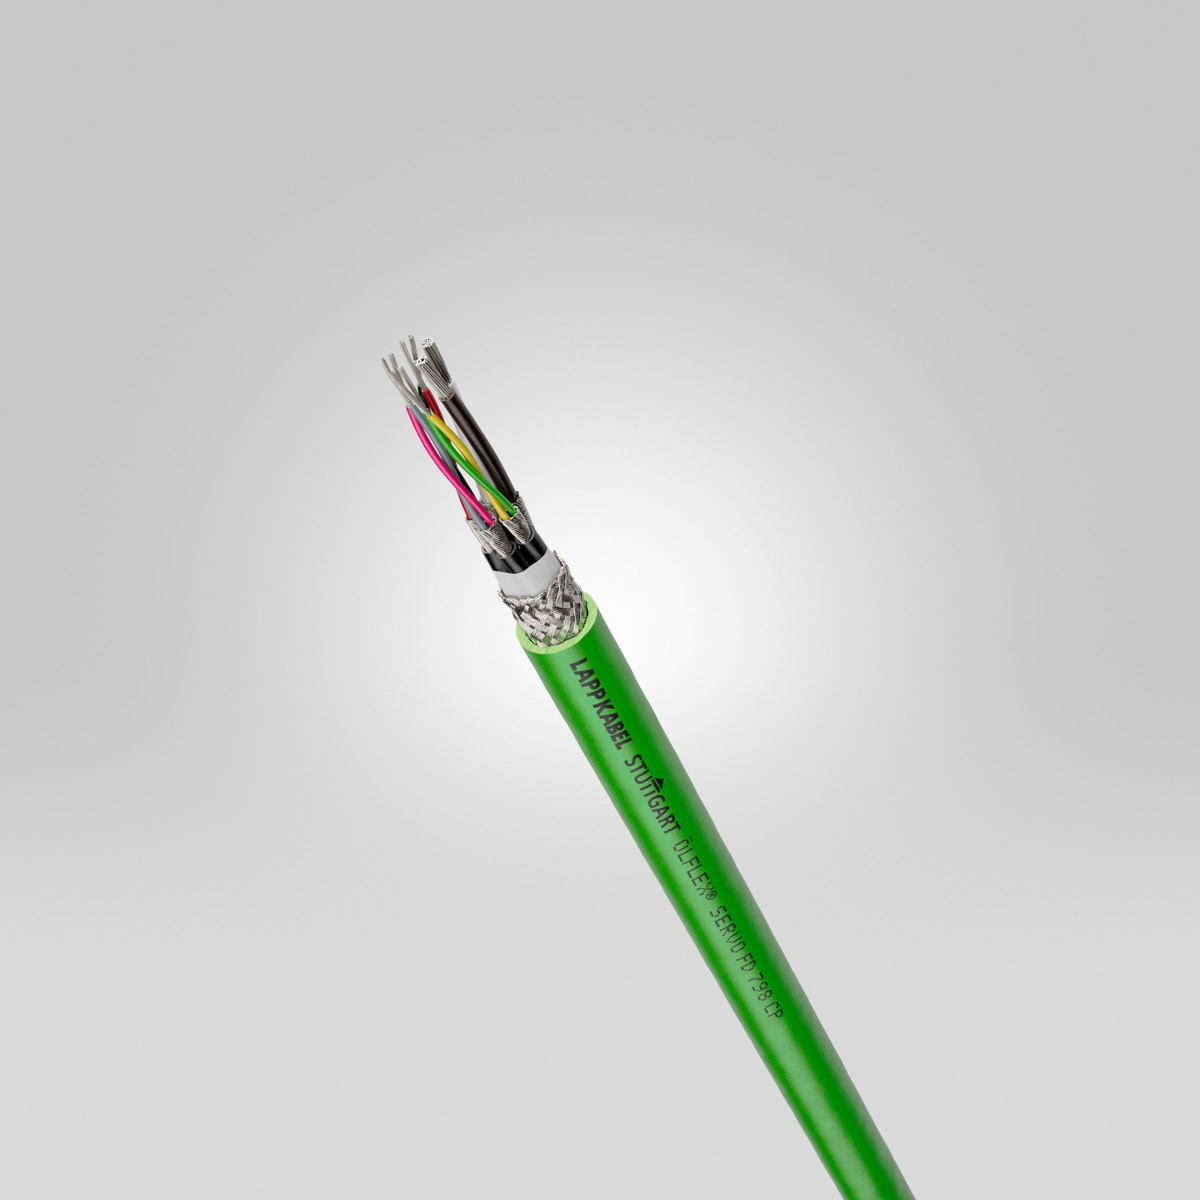 ÖLFLEX® SERVO FD 798 CP enables highly dynamic cable chain applications.